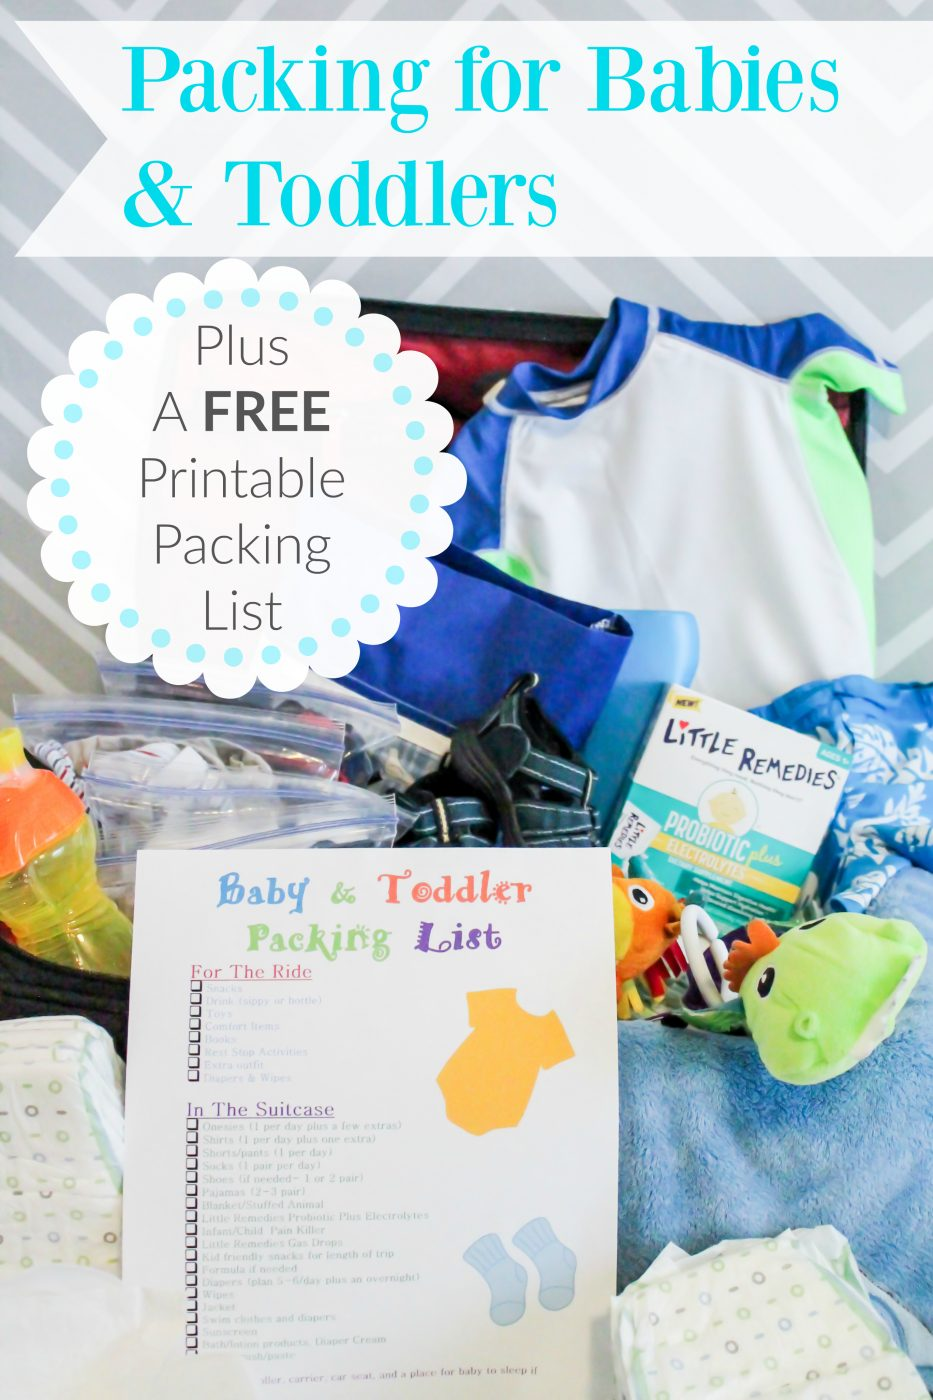 Taking a trip with a toddler or baby? Learn about our hilarious travel tales with our kids and what we suggest packing. Plus a free printable!